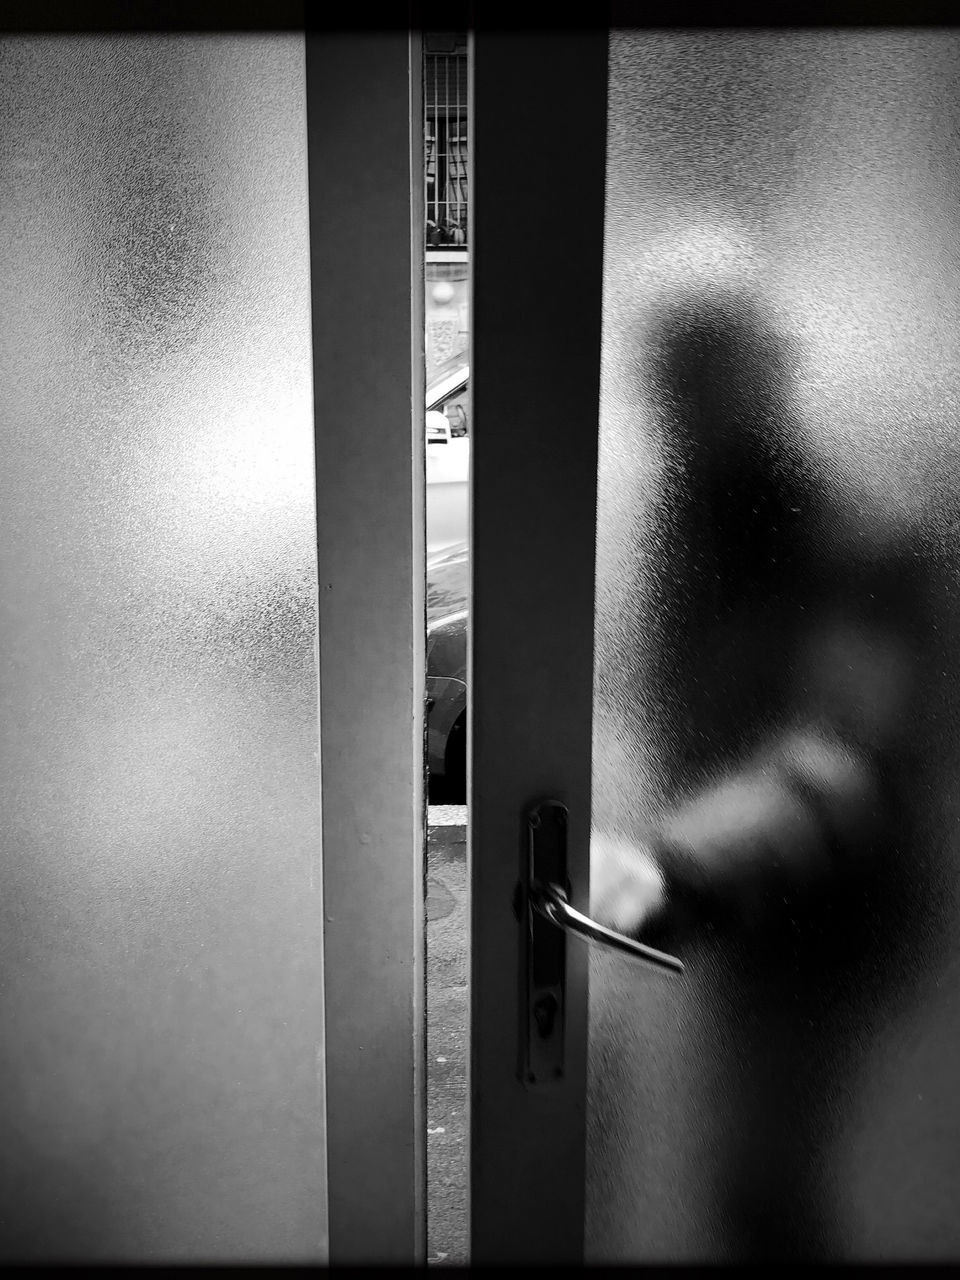 auto post production filter, entrance, door, indoors, transfer print, one person, real people, close-up, human body part, metal, human hand, day, handle, architecture, doorknob, security, wall - building feature, lifestyles